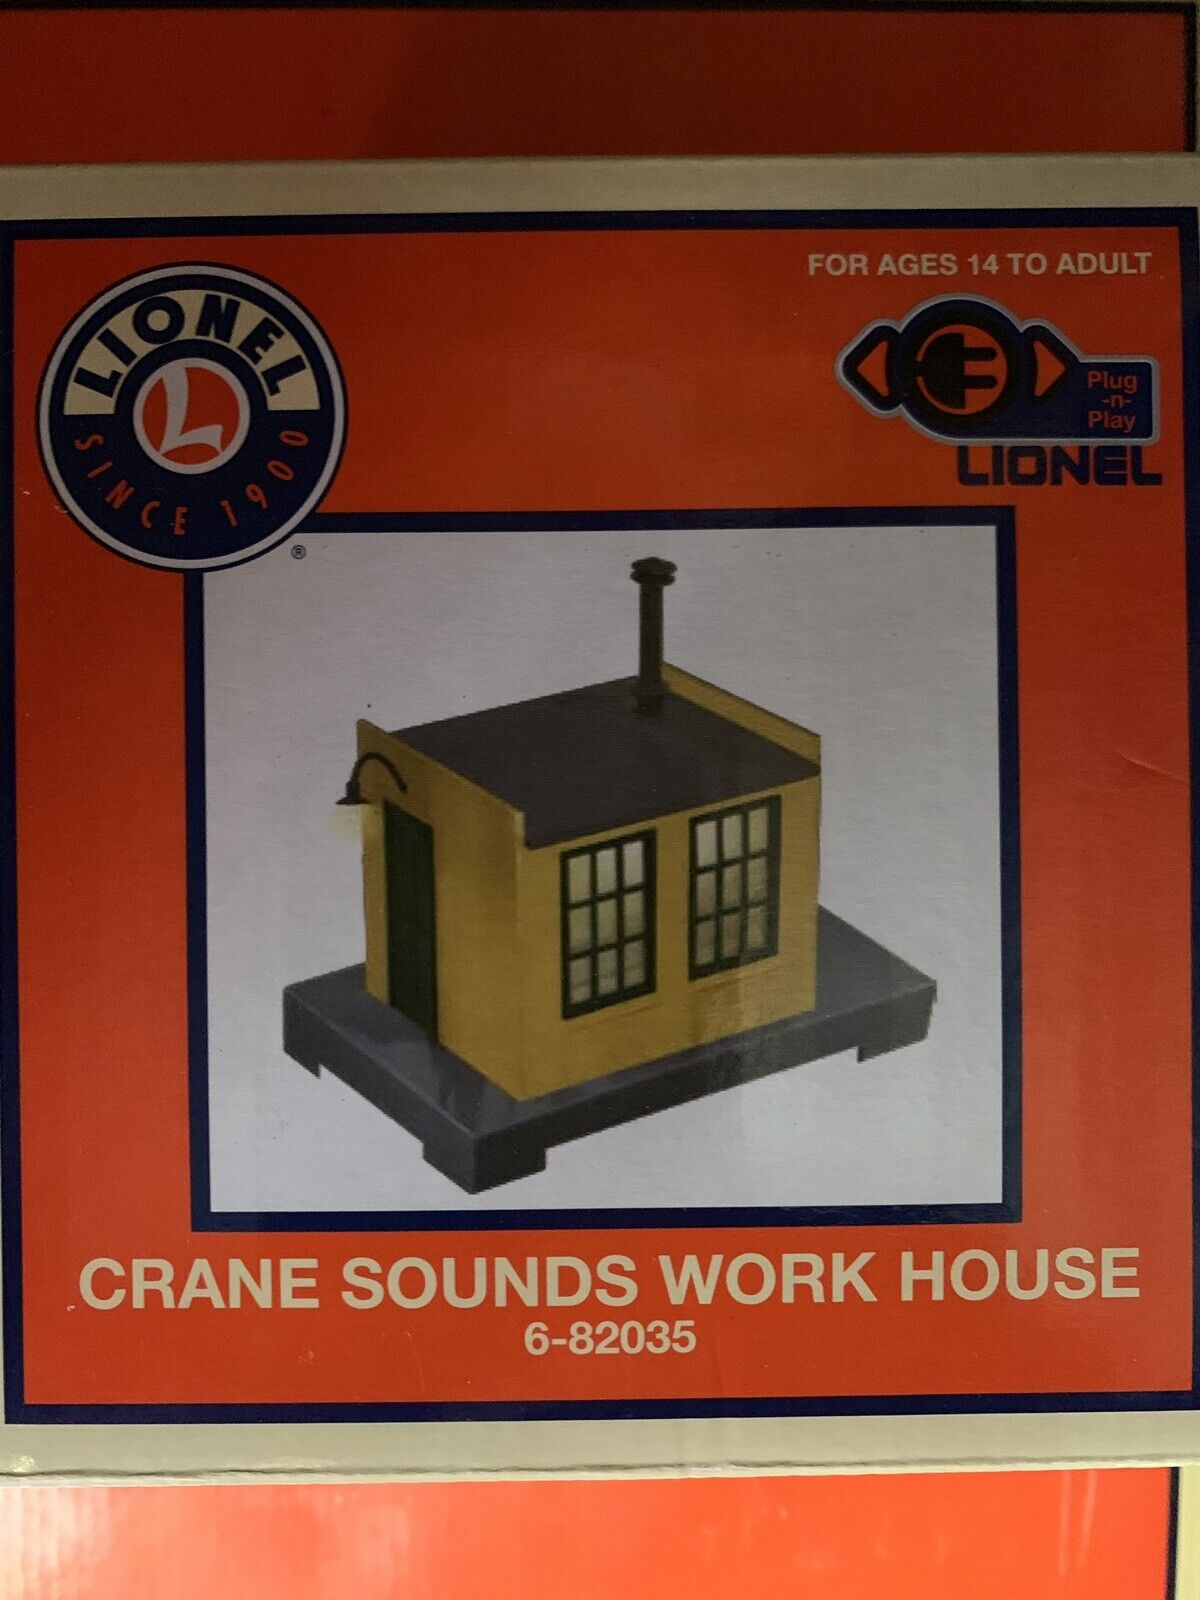 LIONEL OPERATING CRANE SOUNDS WORK HOUSE ACCESSORY NEW FITS MTH GANTRY CAR BURRO